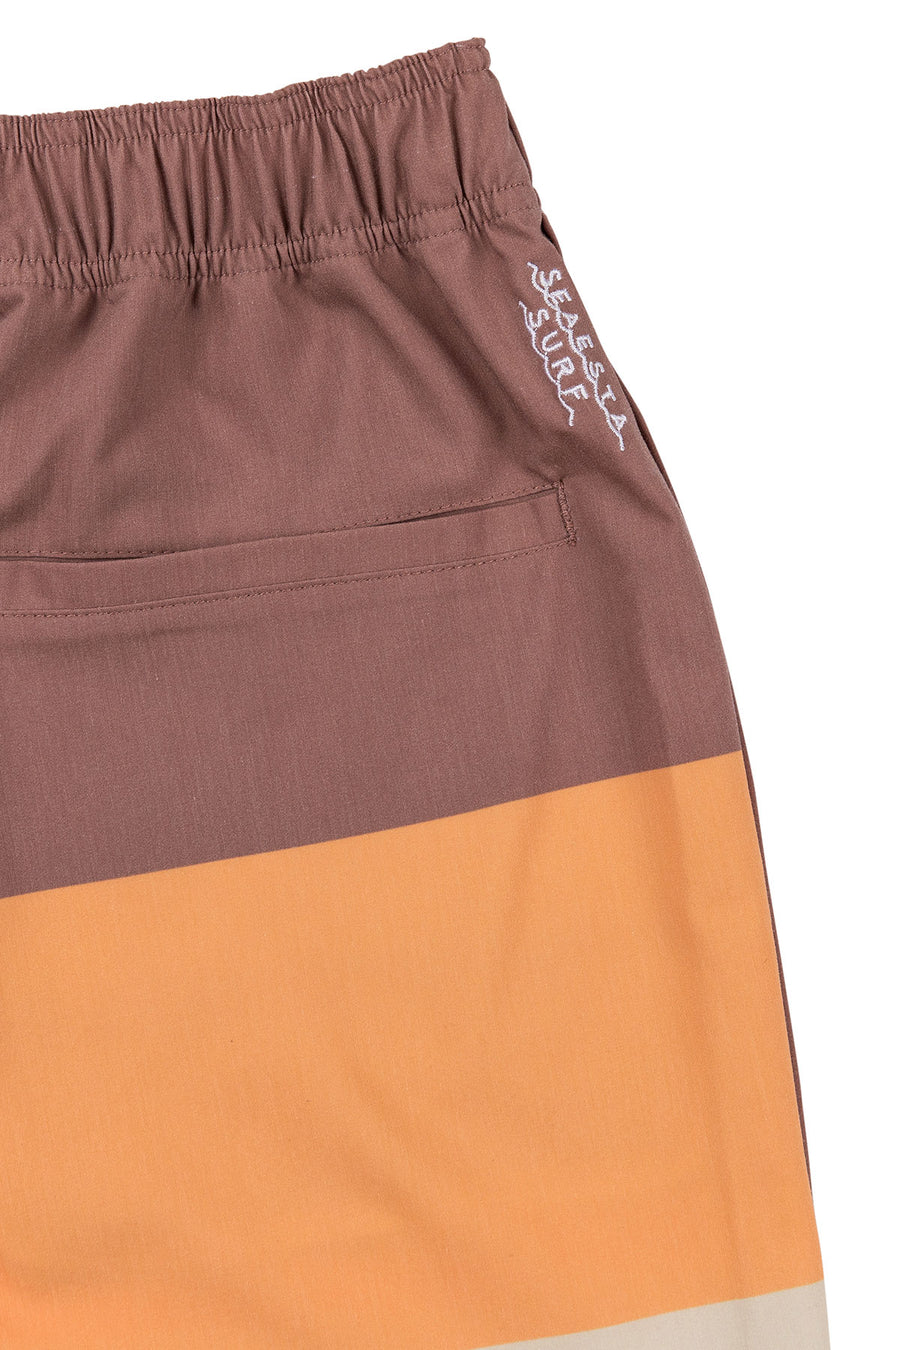 Men's Boardshorts / Triple Scoop / Caramel